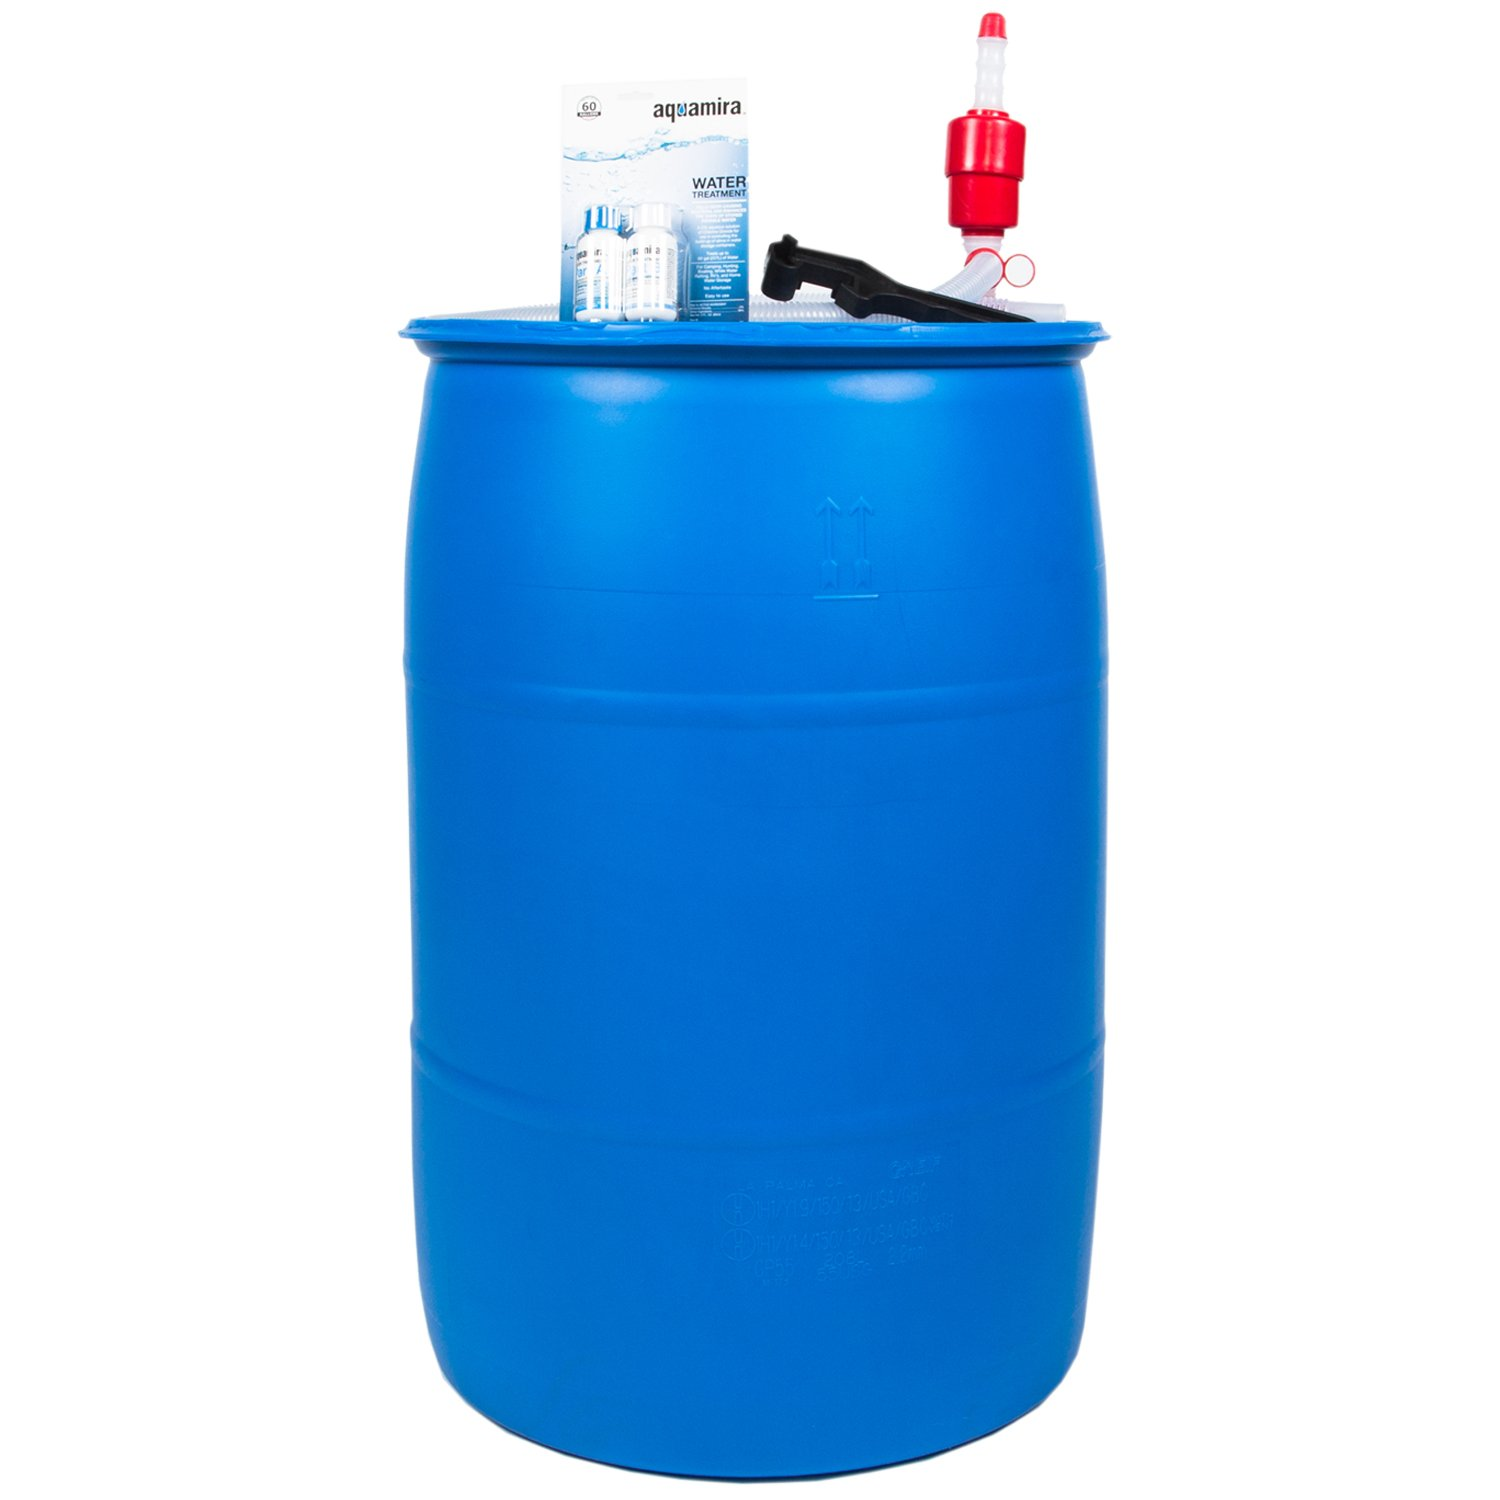 Augason Farms Emergency Water Storage Supply Kit